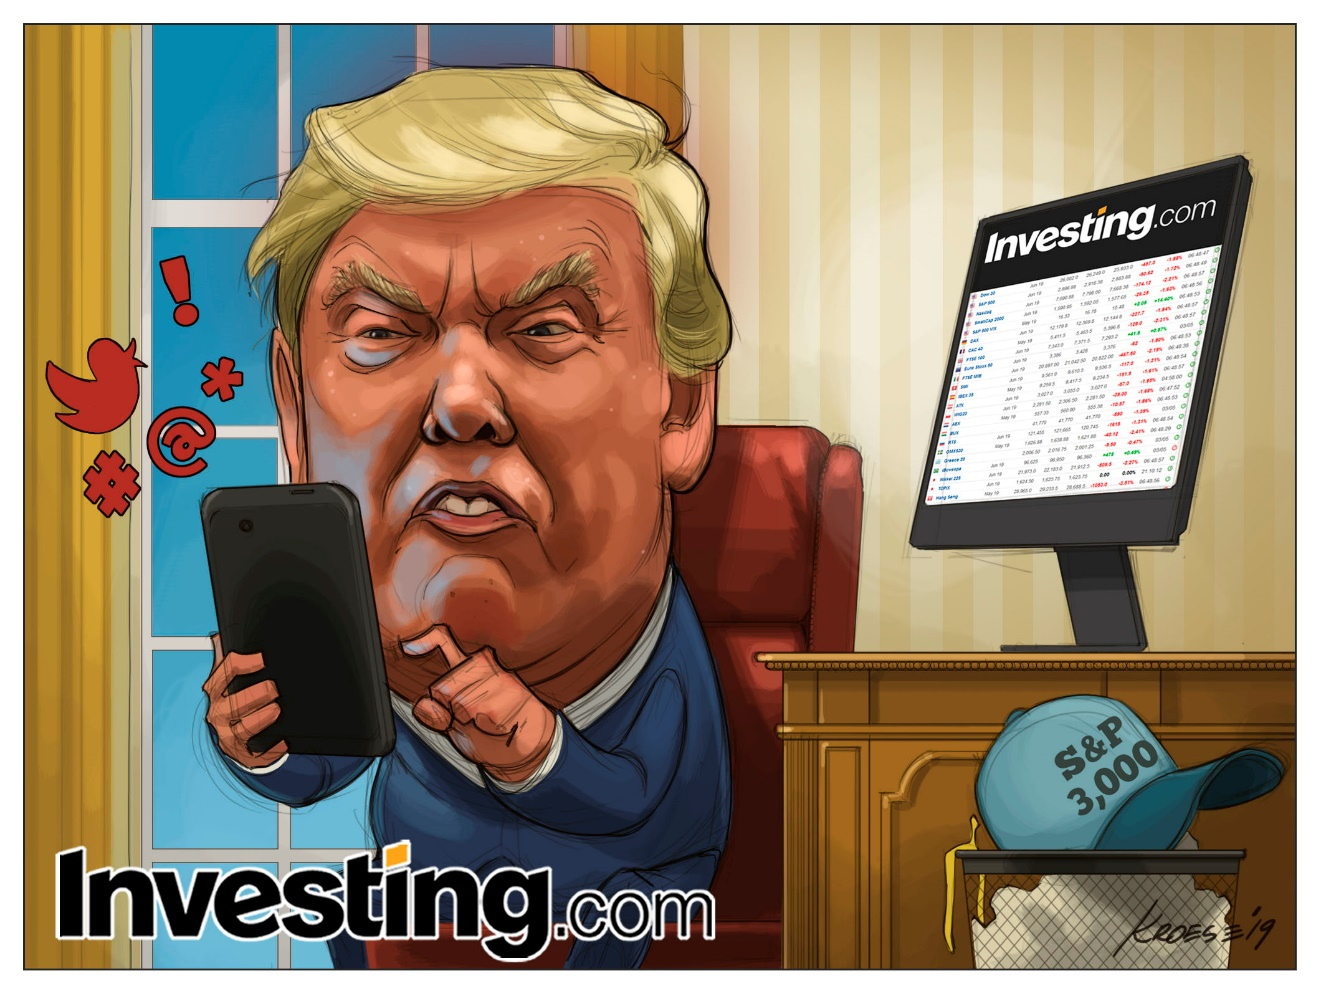 Tweeter-in-Chief Unnerves Markets